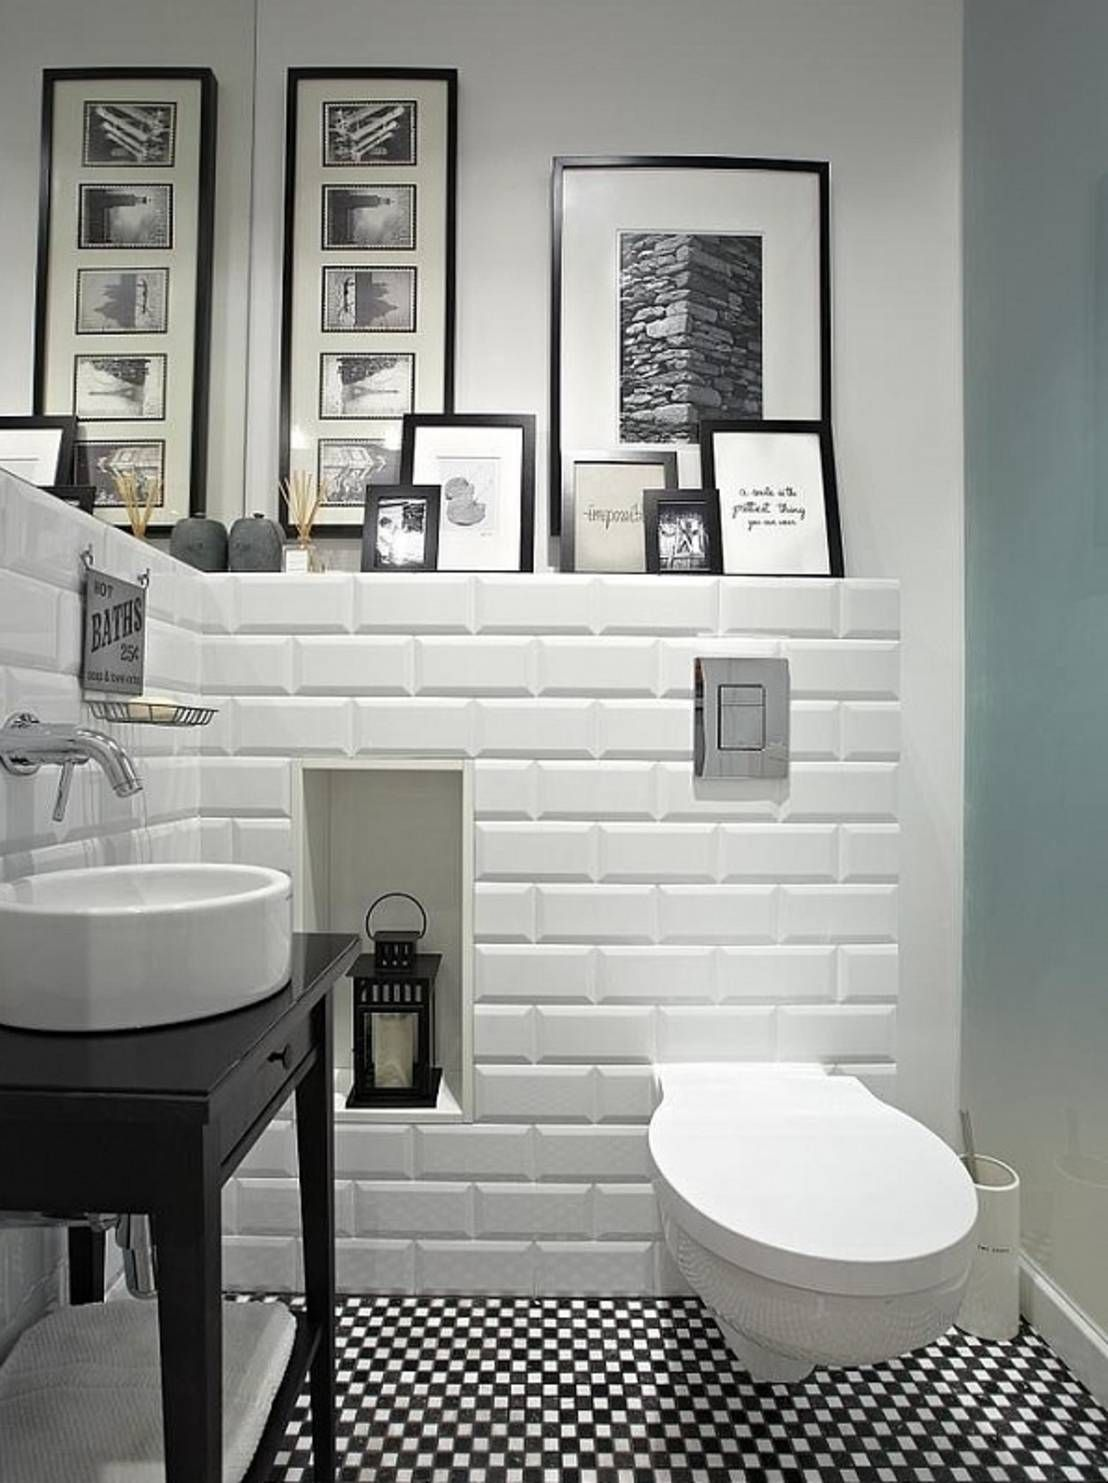 6 bathroom makeoever ideas without renovation